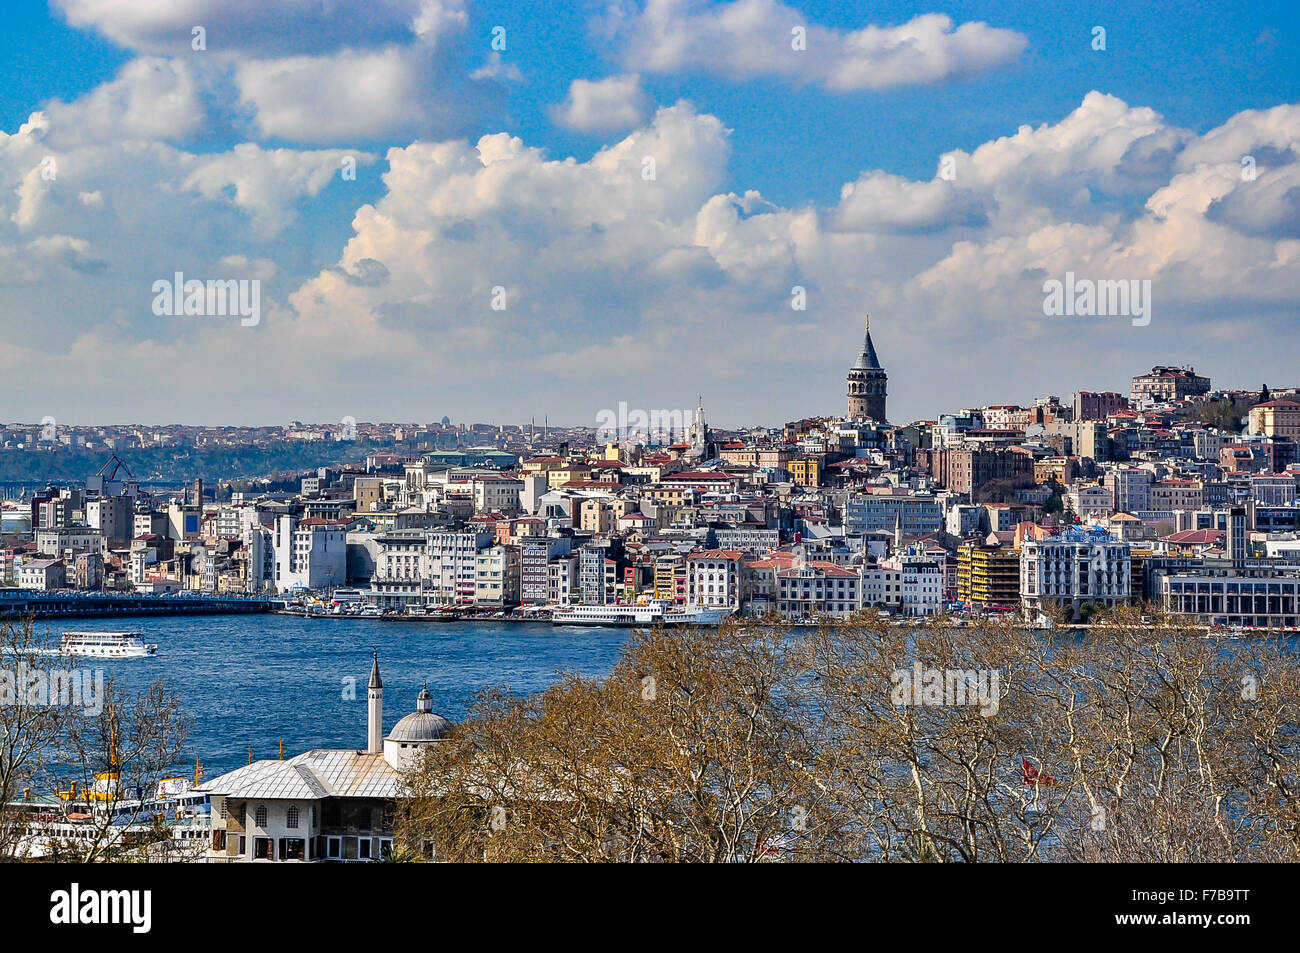 View of Galata and Golden Horn bay from Topkapi Palace on a beautiful day - Stock Image